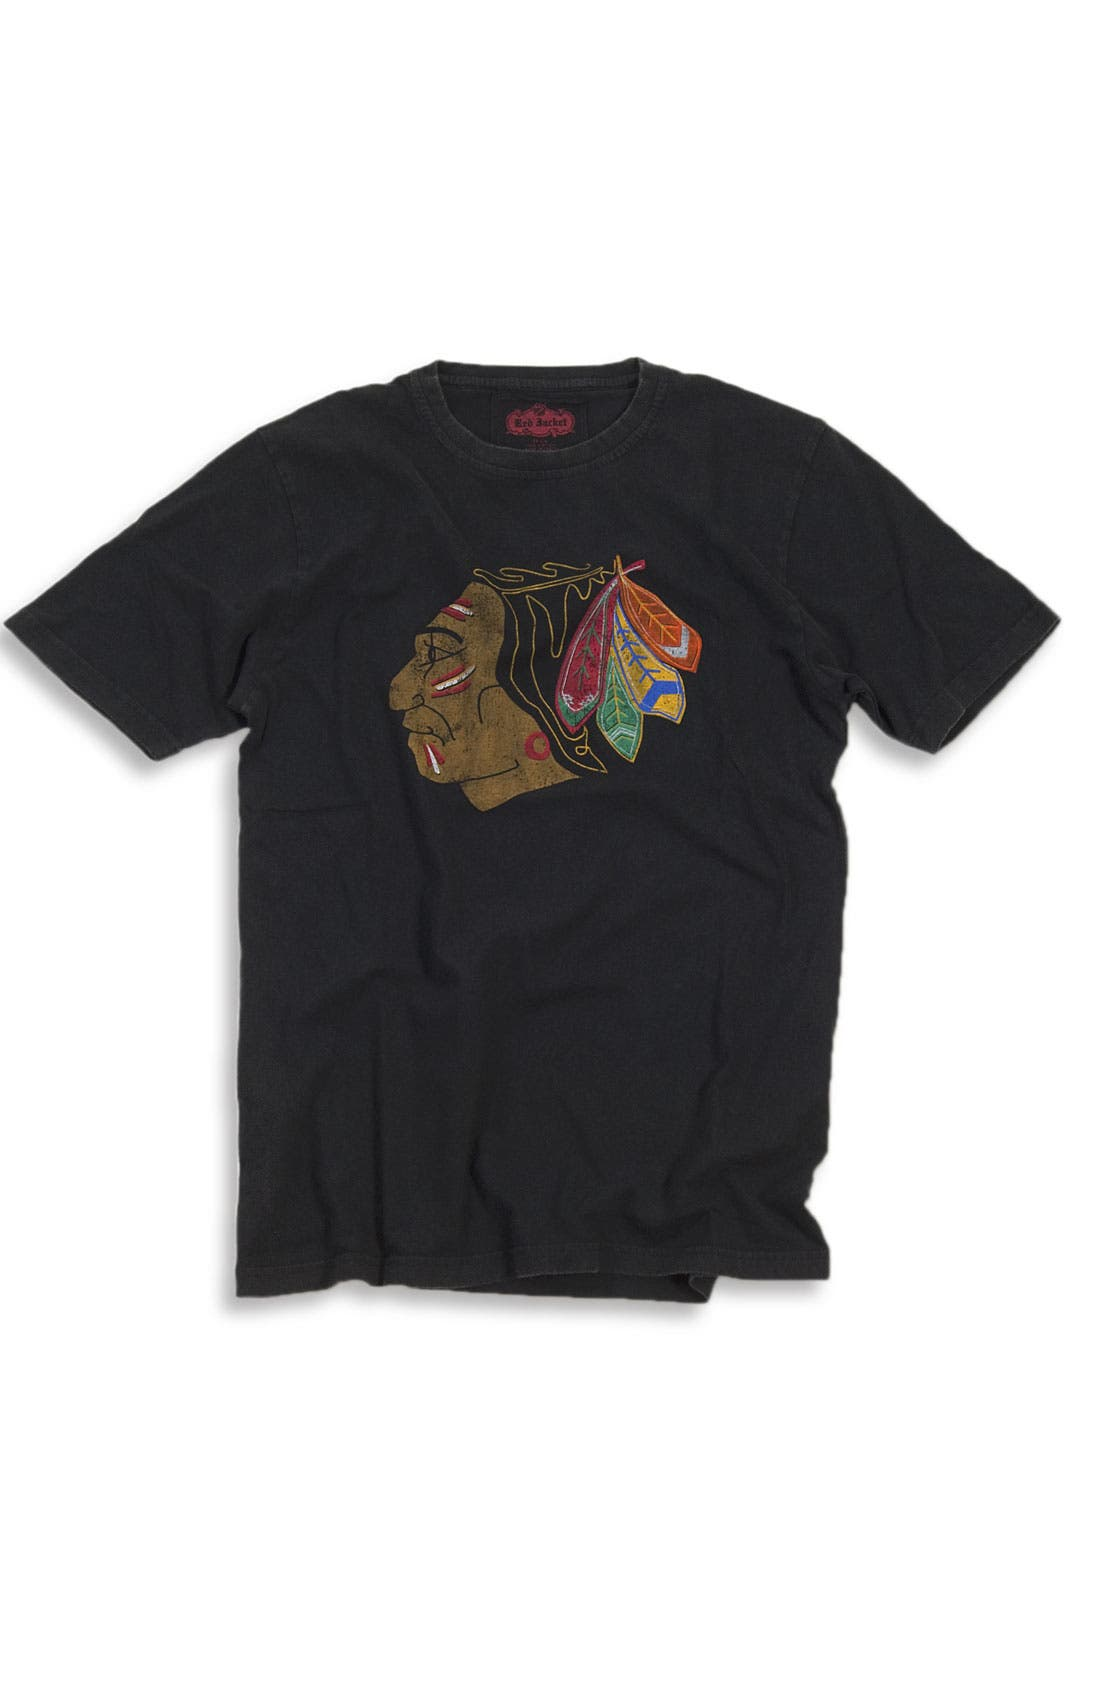 Alternate Image 1 Selected - Red Jacket 'Chicago Blackhawks - Brass Tack' T-Shirt (Men)